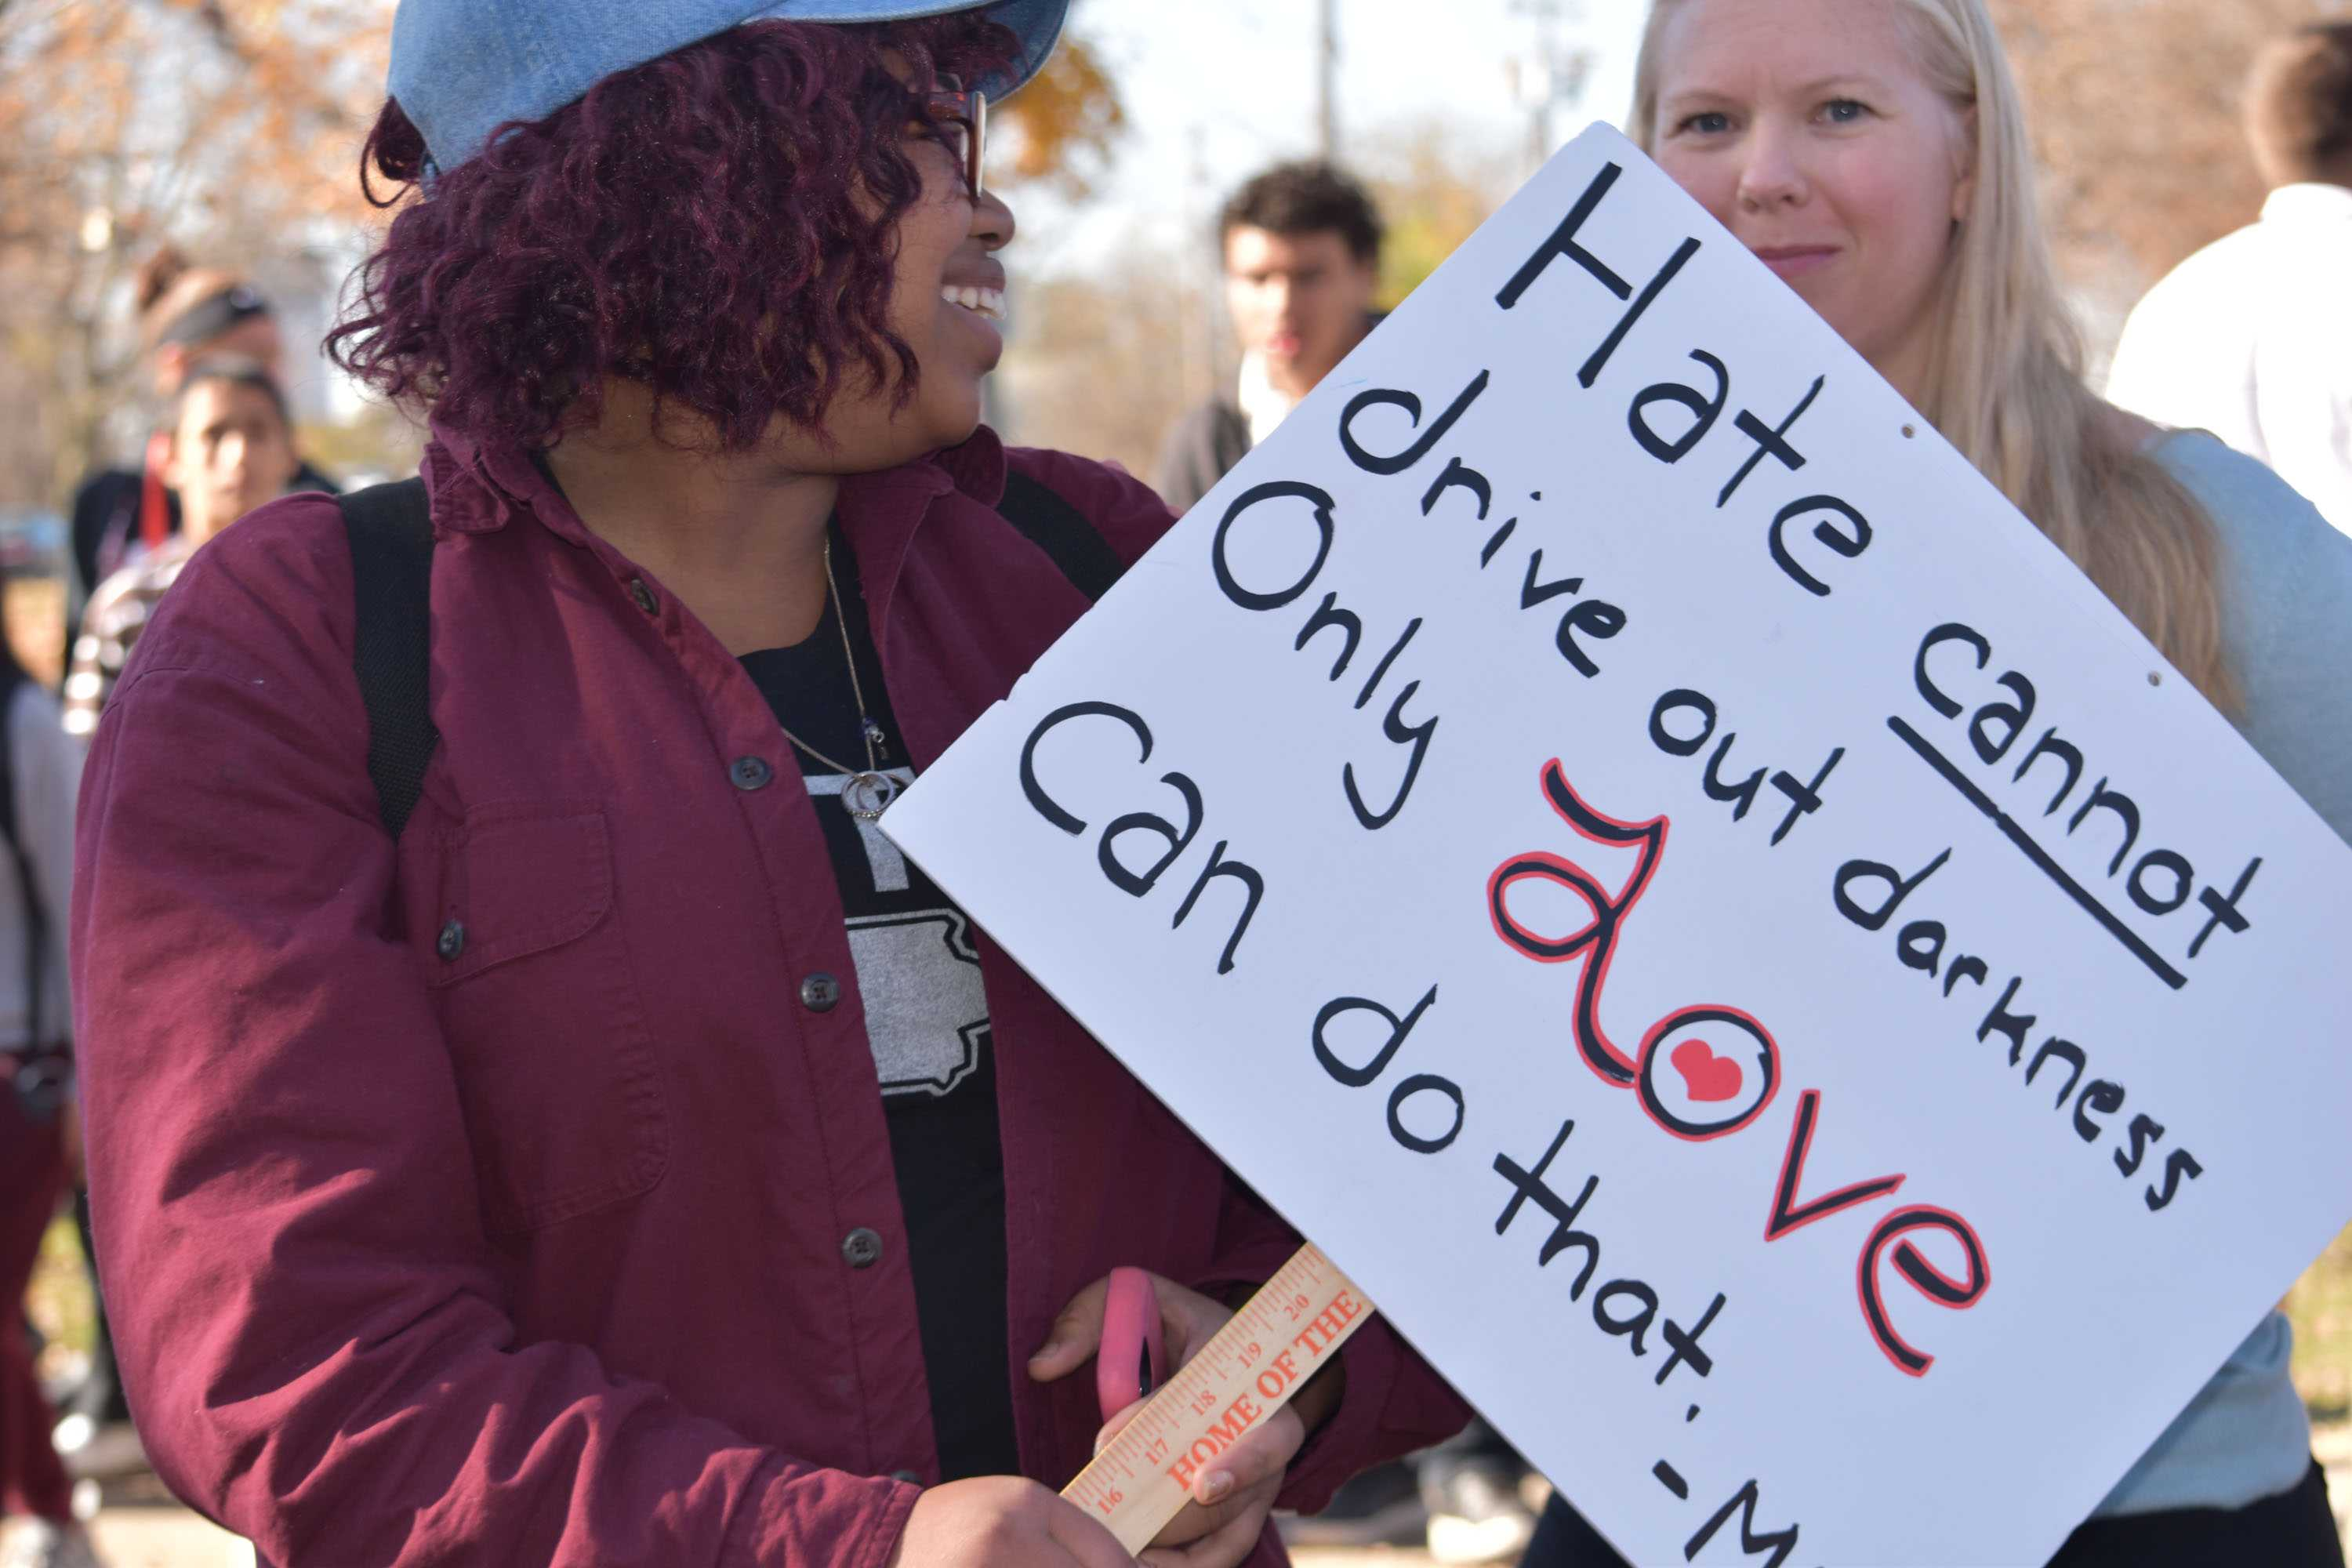 Senior Jalesha Johnson organized the walk out and led students in chants outside the school on Wednesday at 10:30 a.m.